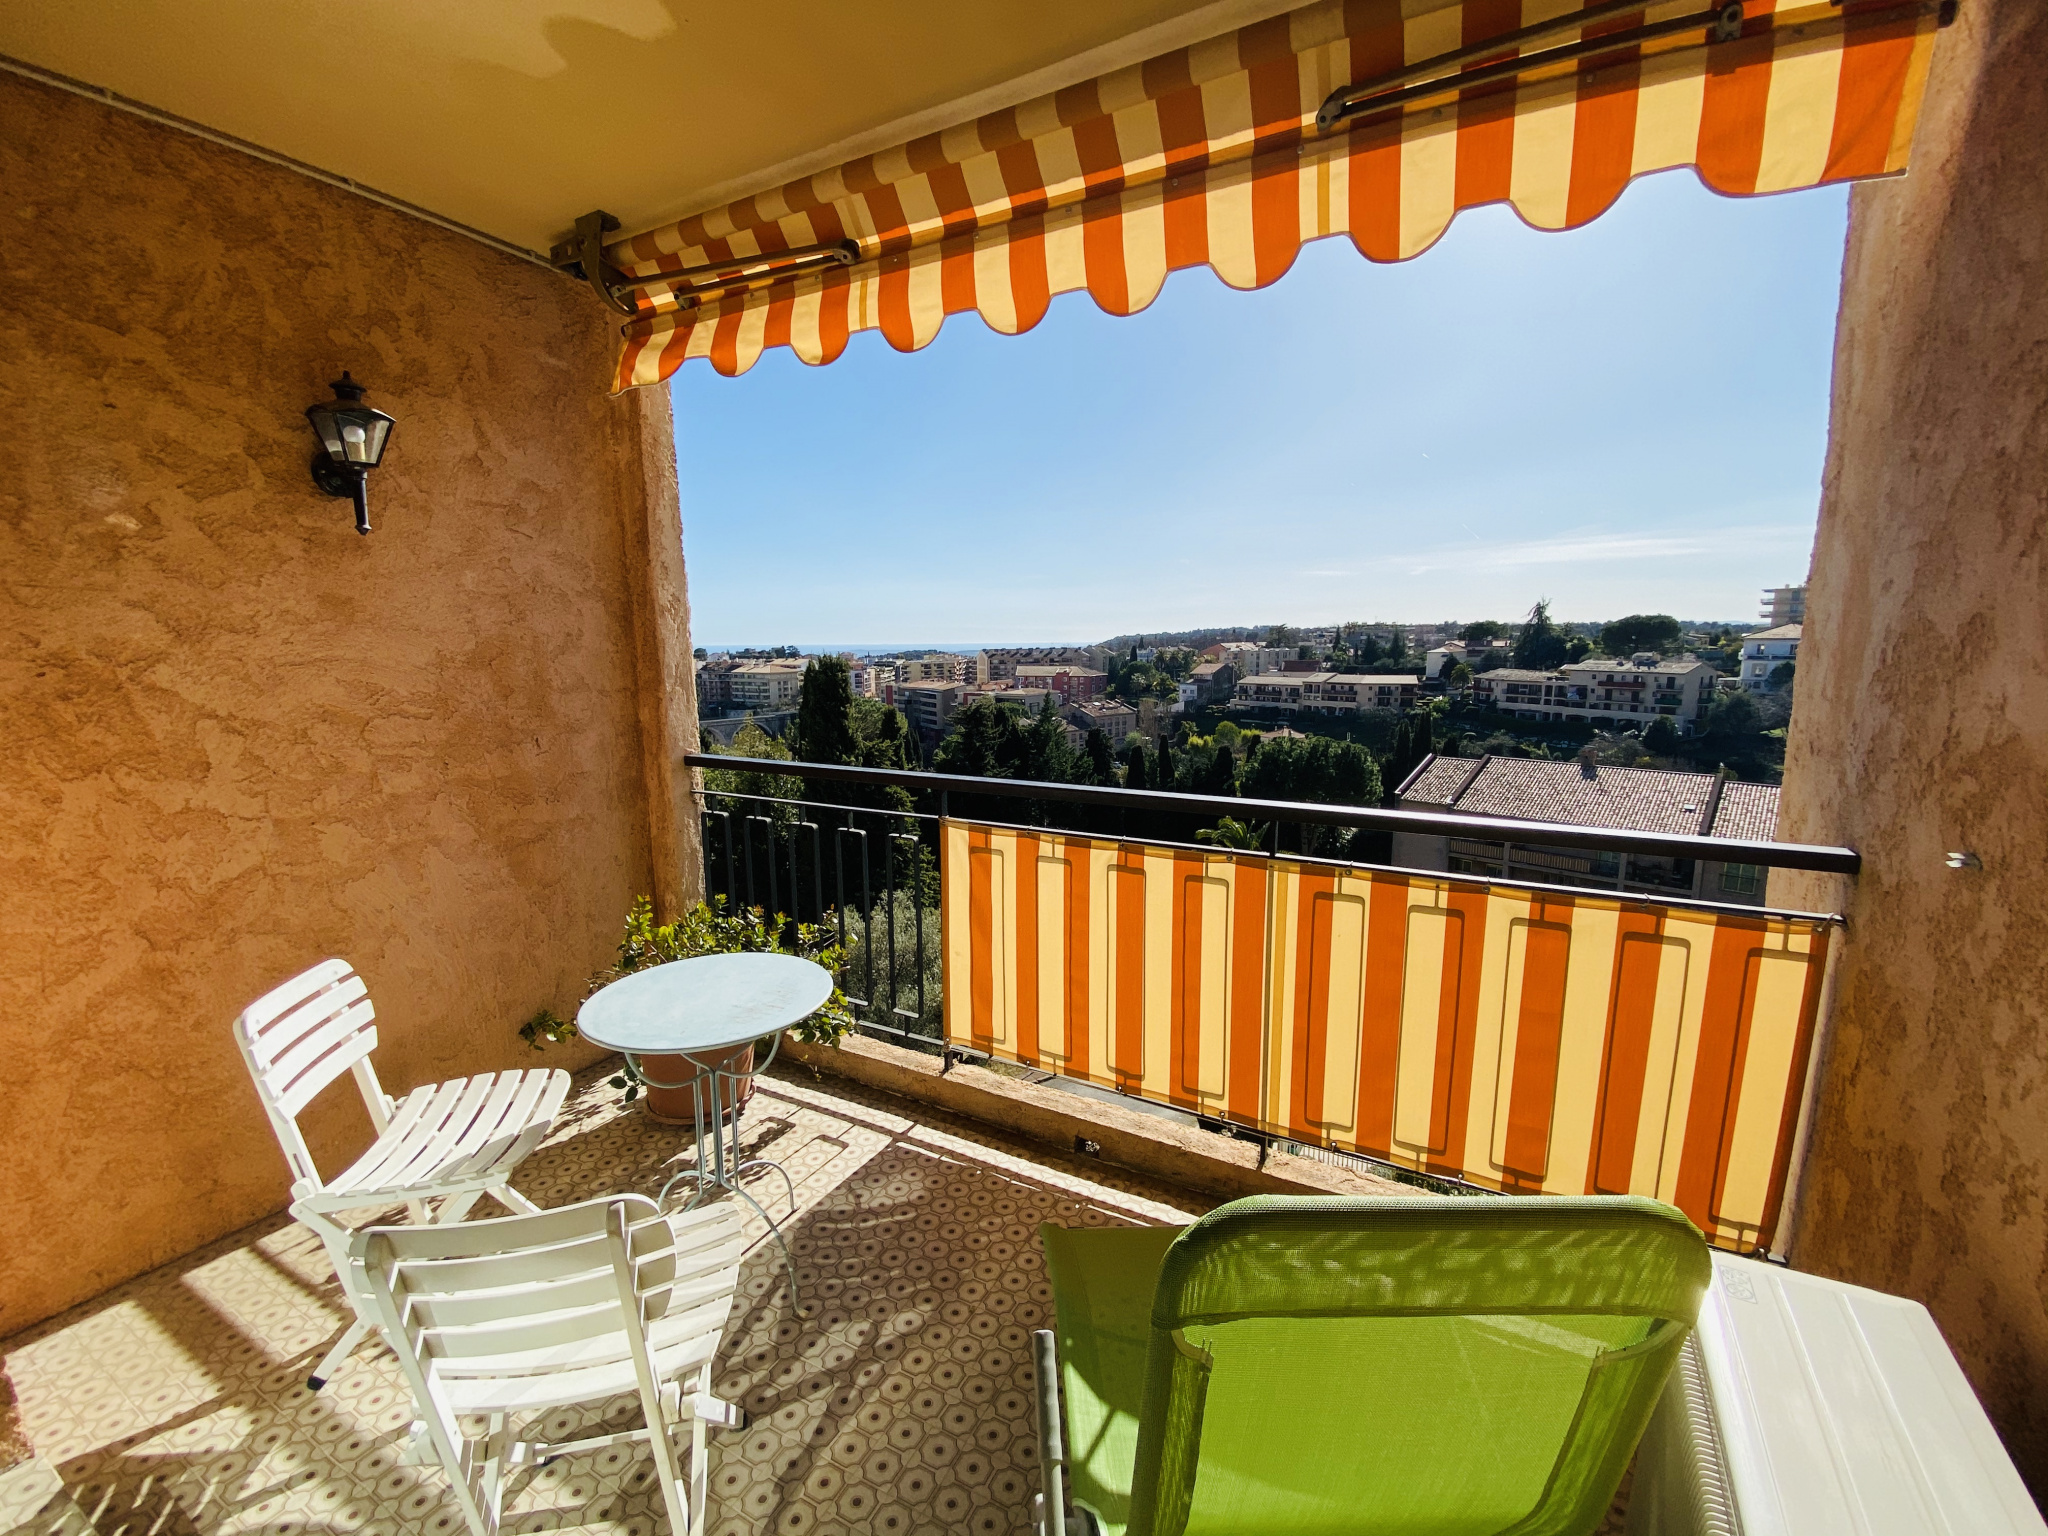 VENCE - Top floor 2-room apartment, sea view. Secure residence with swimming pool. Parking and cel